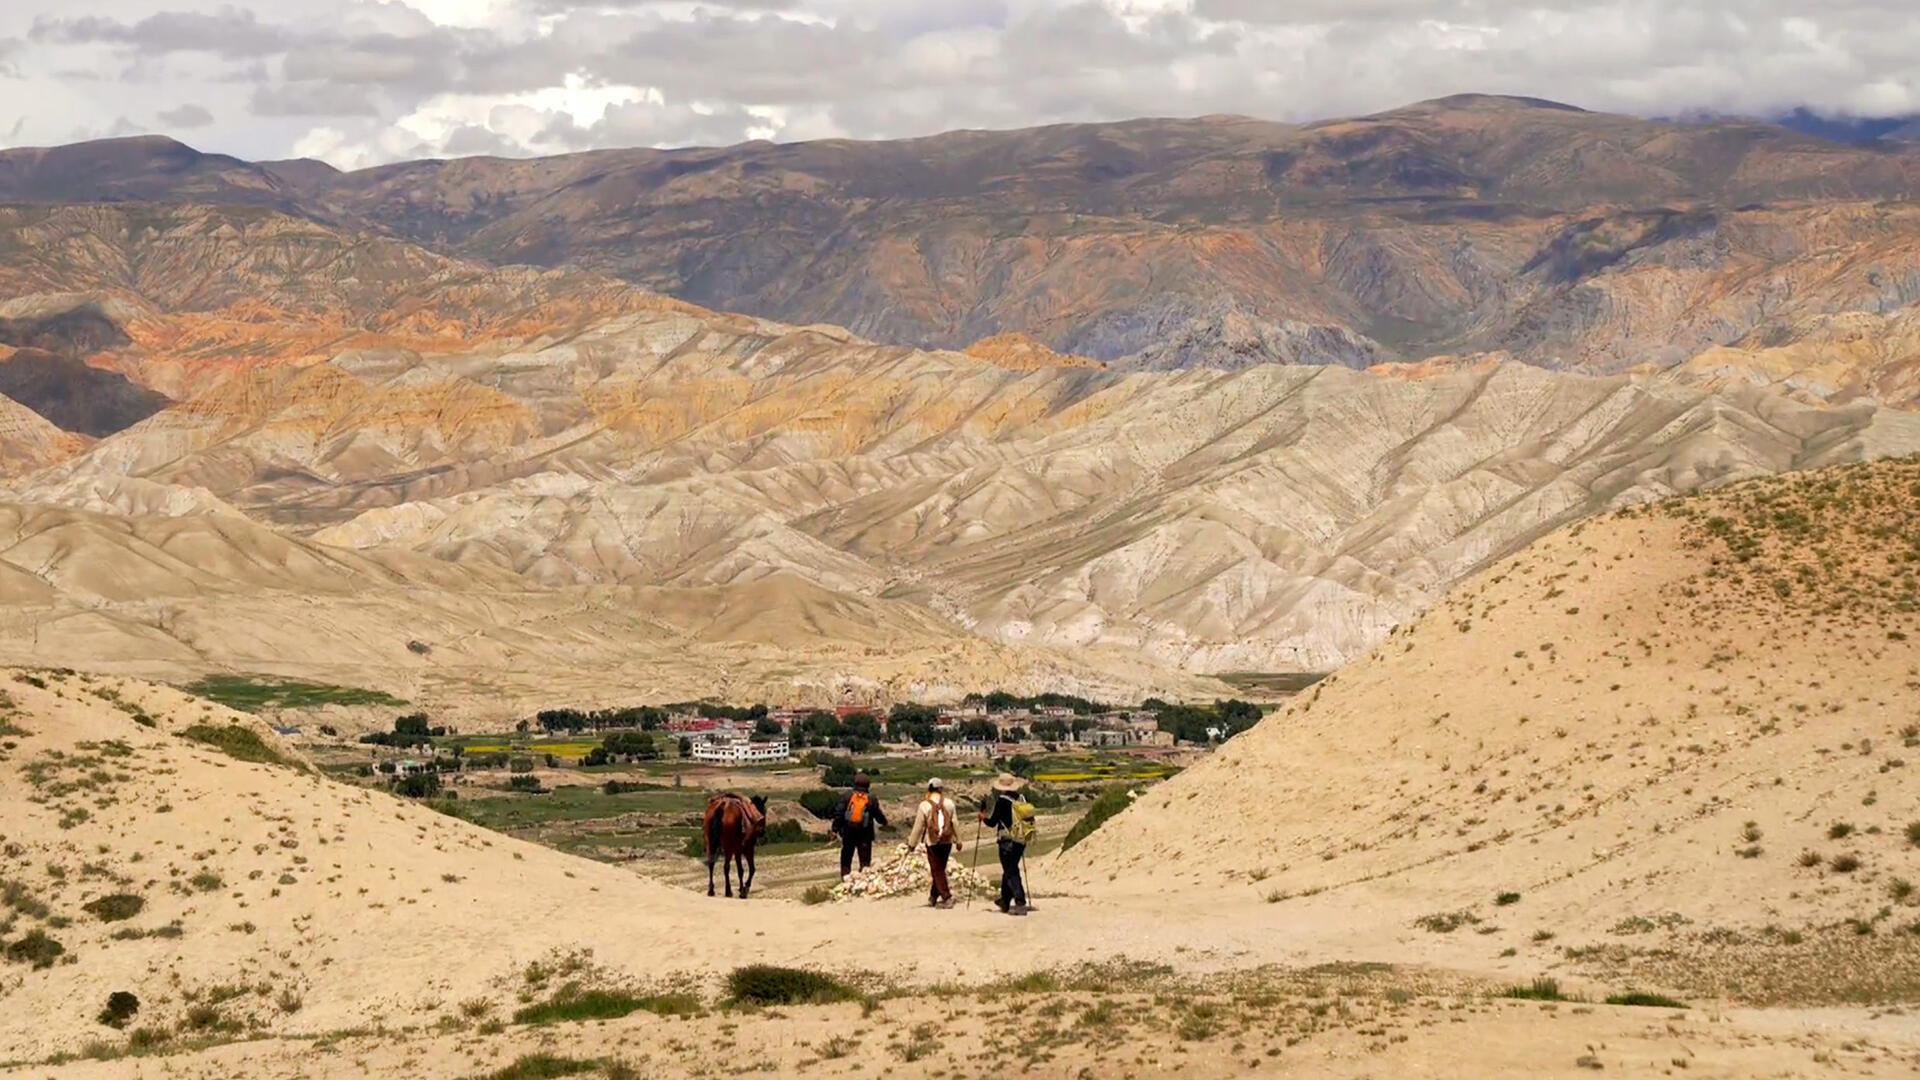 Mustang - Lo Manthang - capitale mythique - Olivier Weber - Si loin si proche